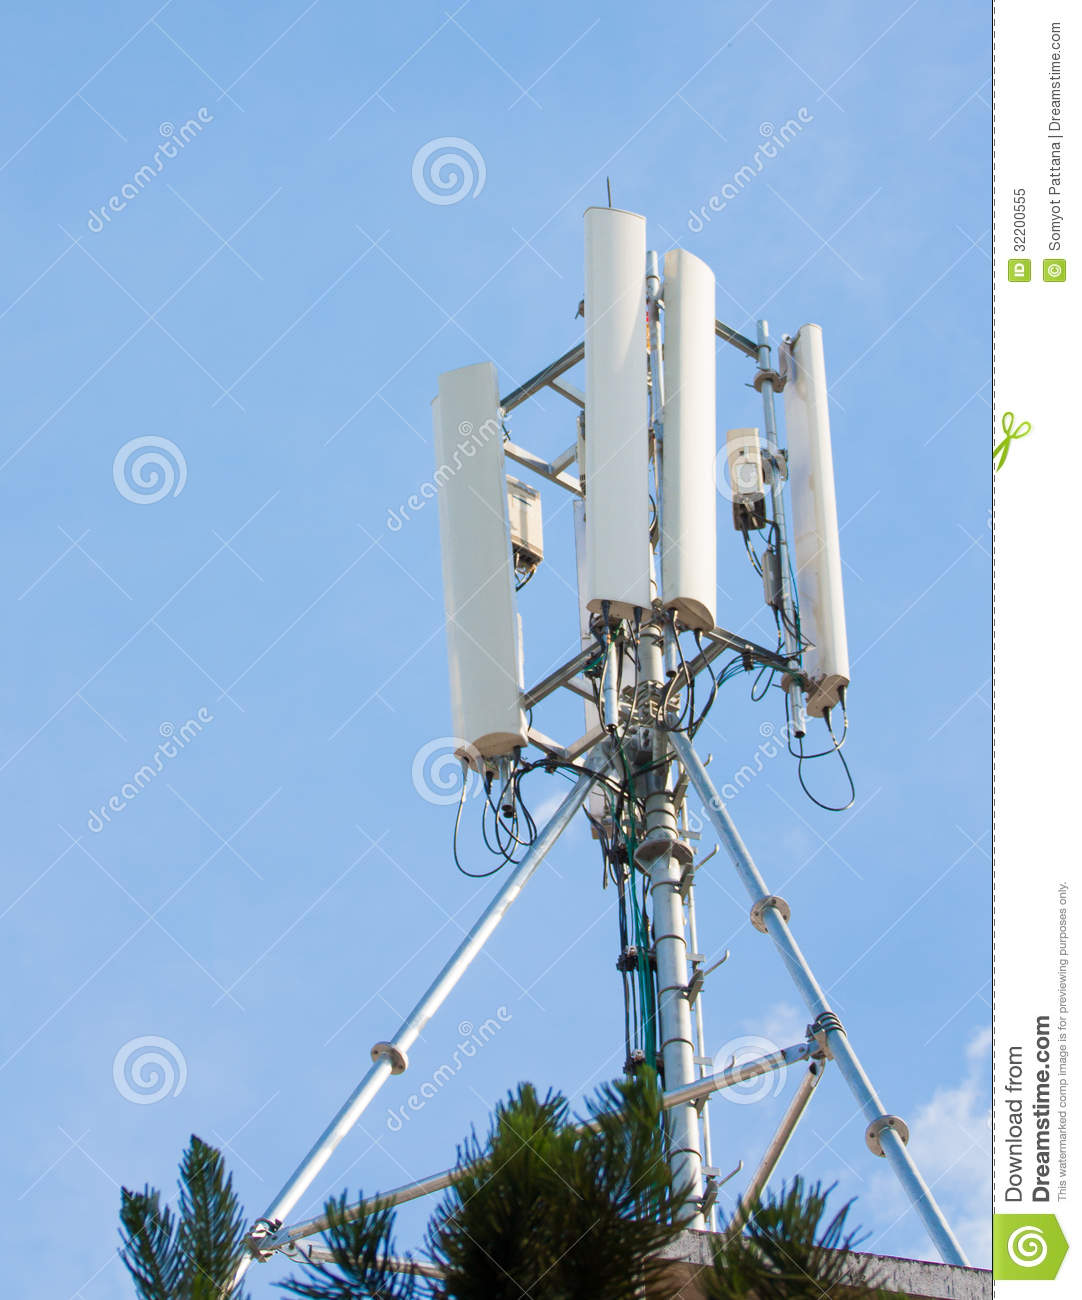 Cellulaire antenne